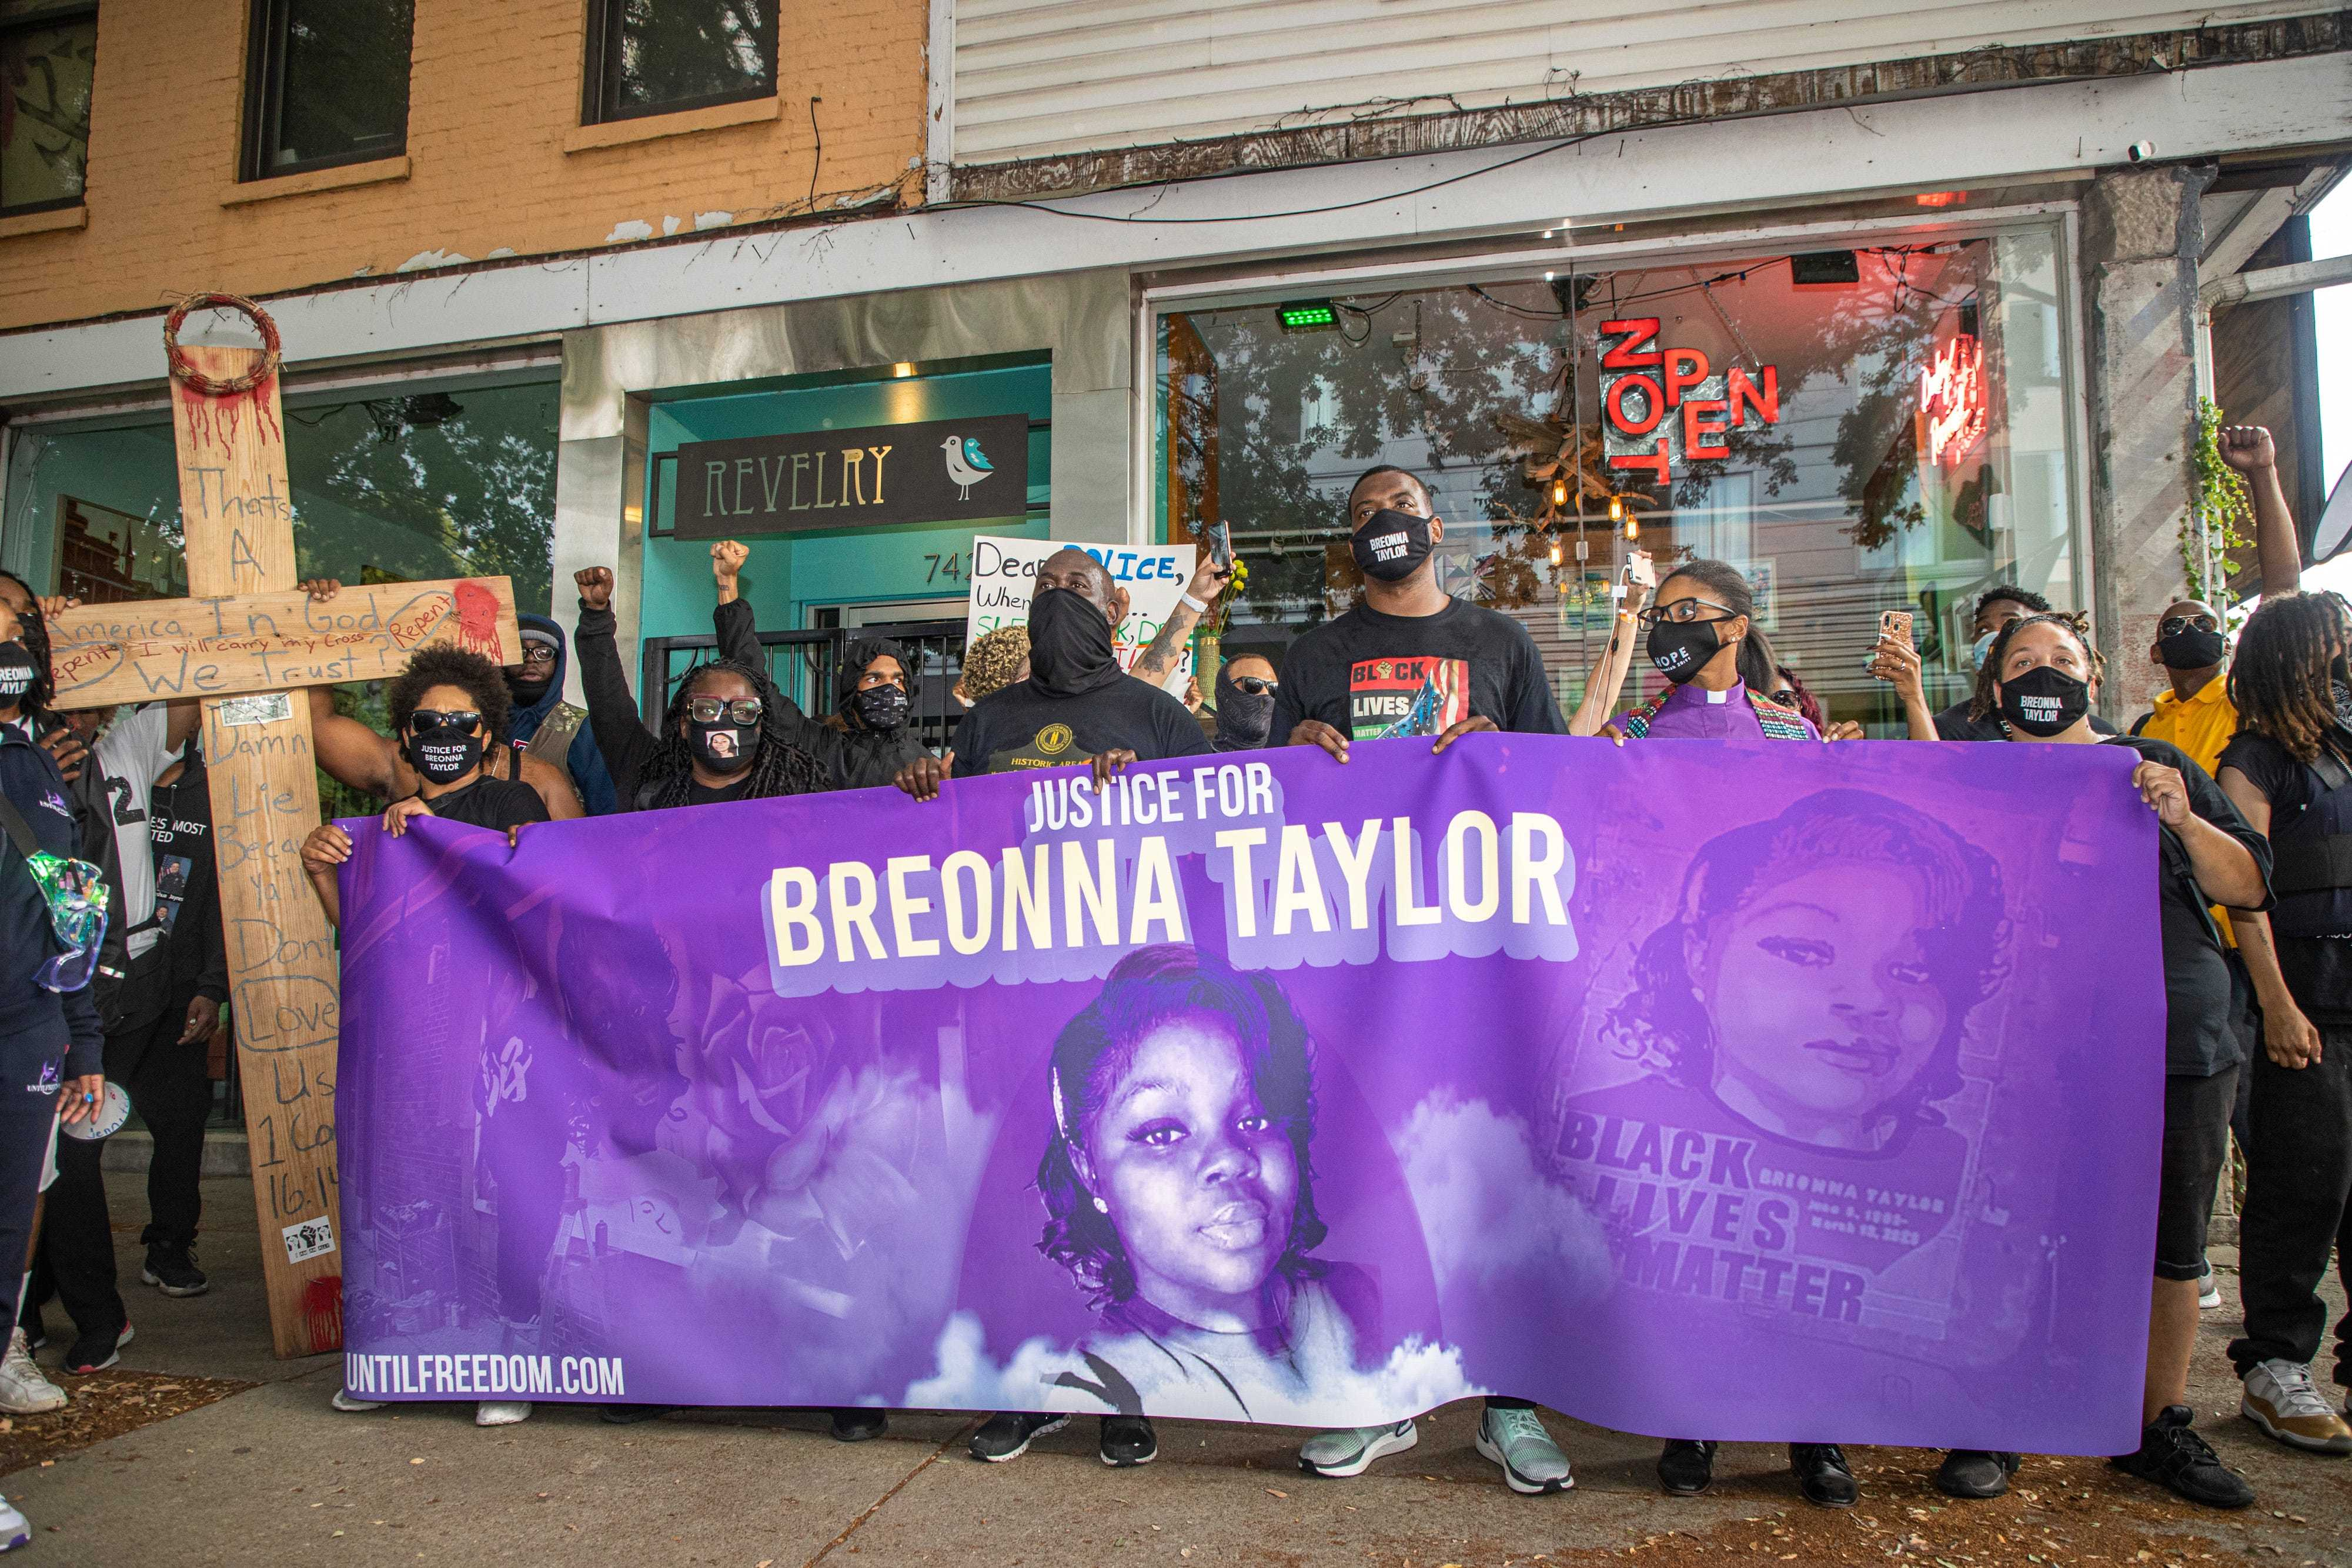 KY: Justice for Breonna Taylor rallies